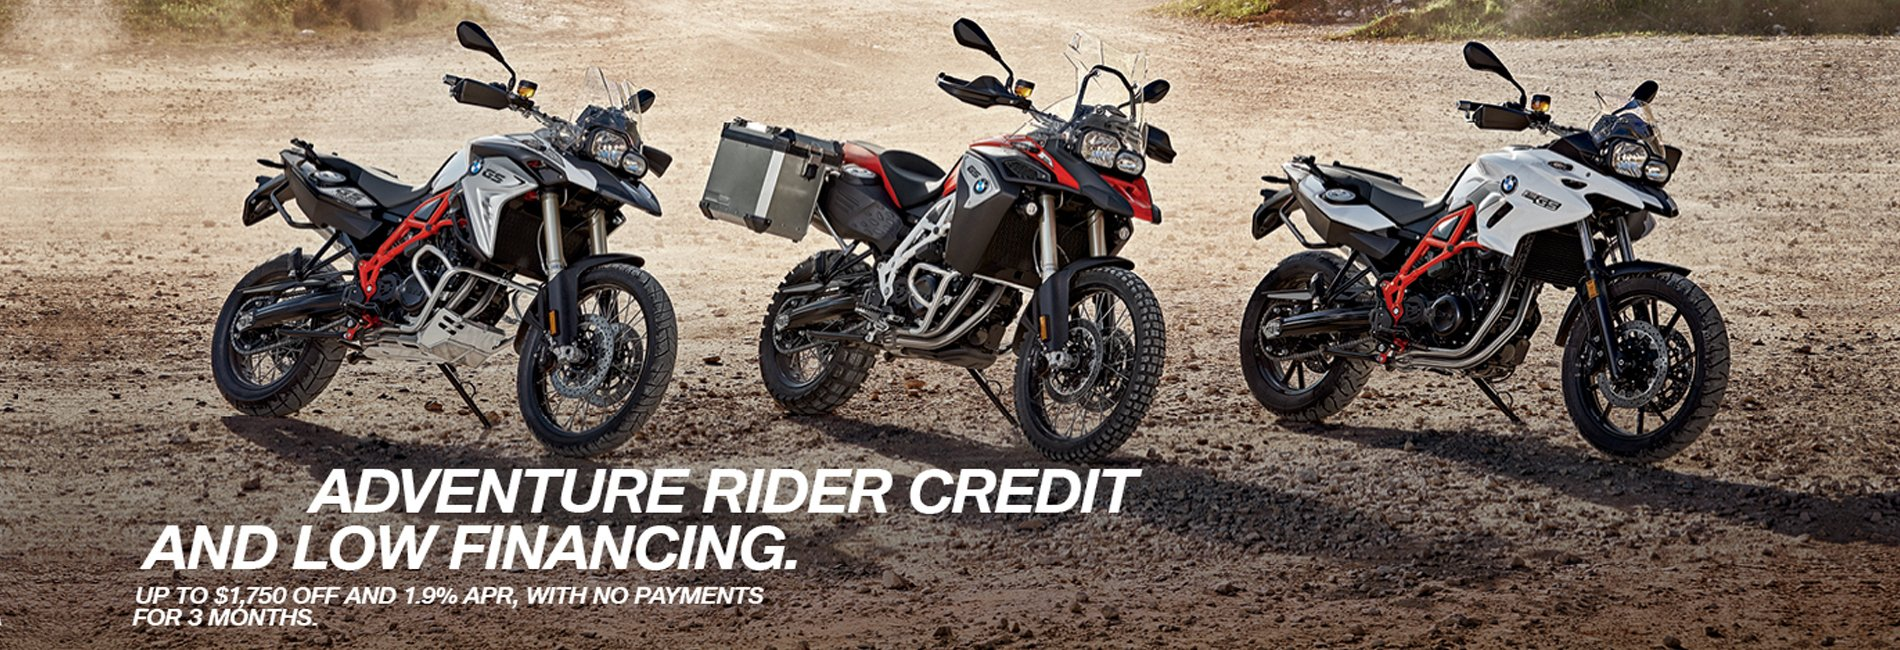 AdventureRiderCreditandAPR-DealerWebAsset1900x650.jpg